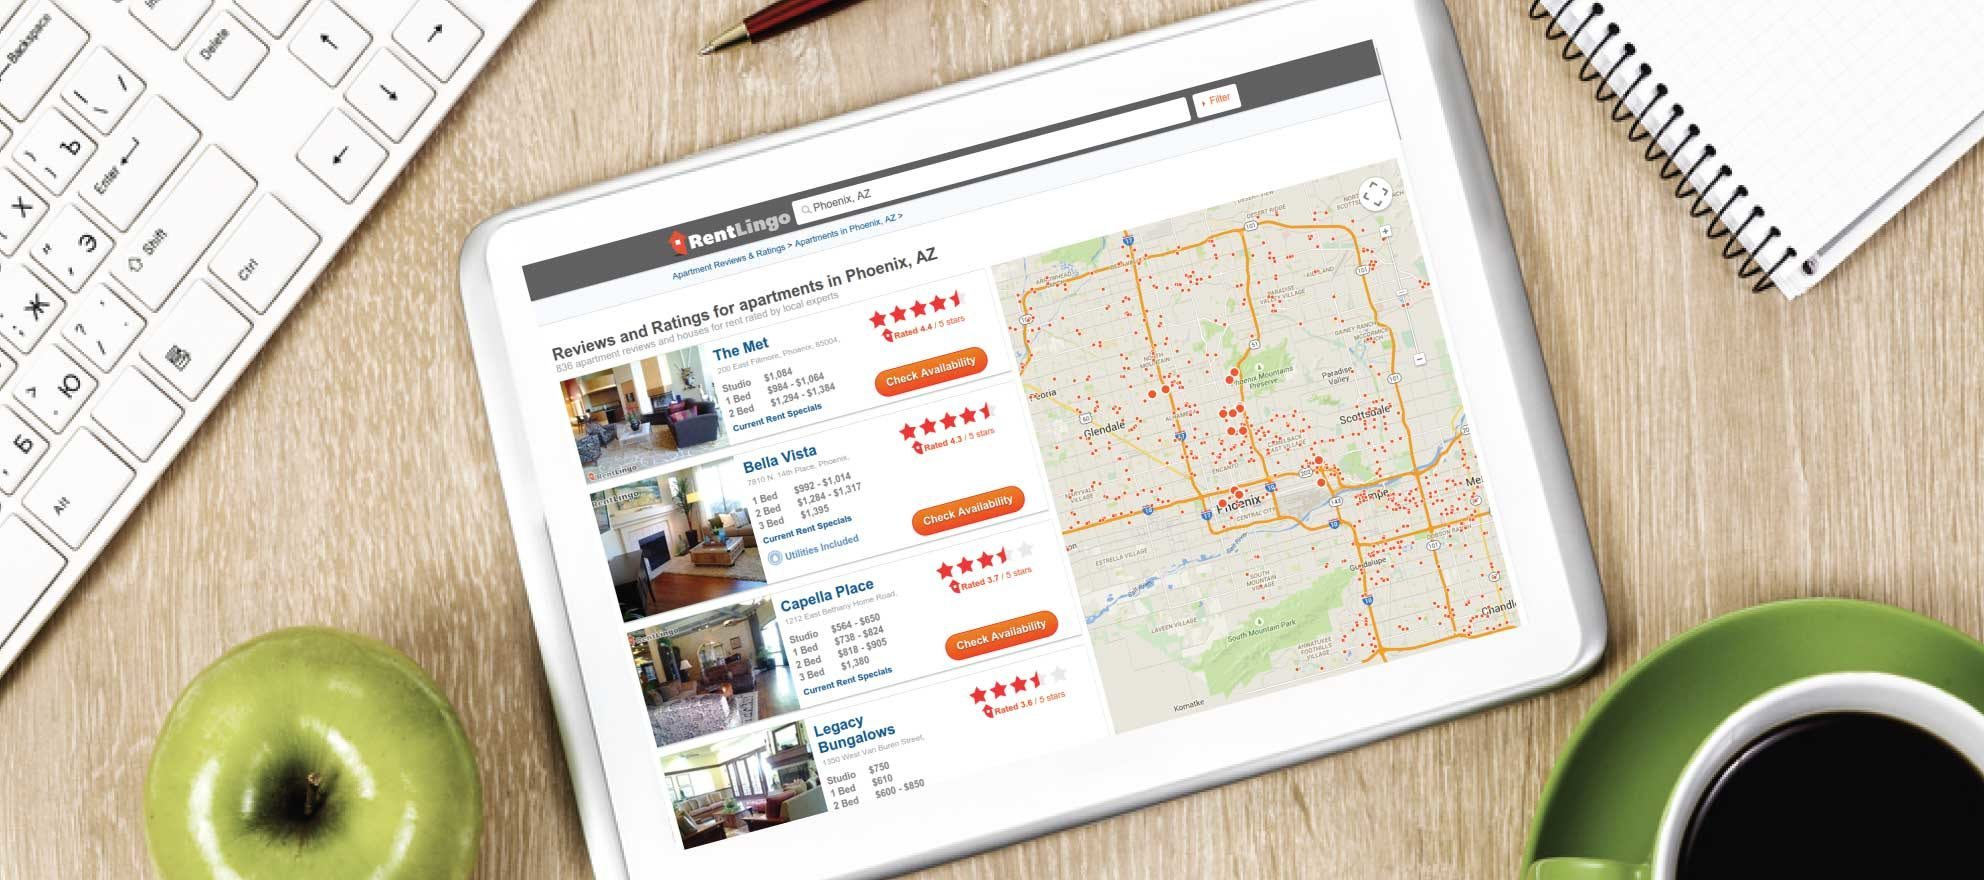 RentLingo partners with ForRent.com to provide apartment and neighborhood reviews